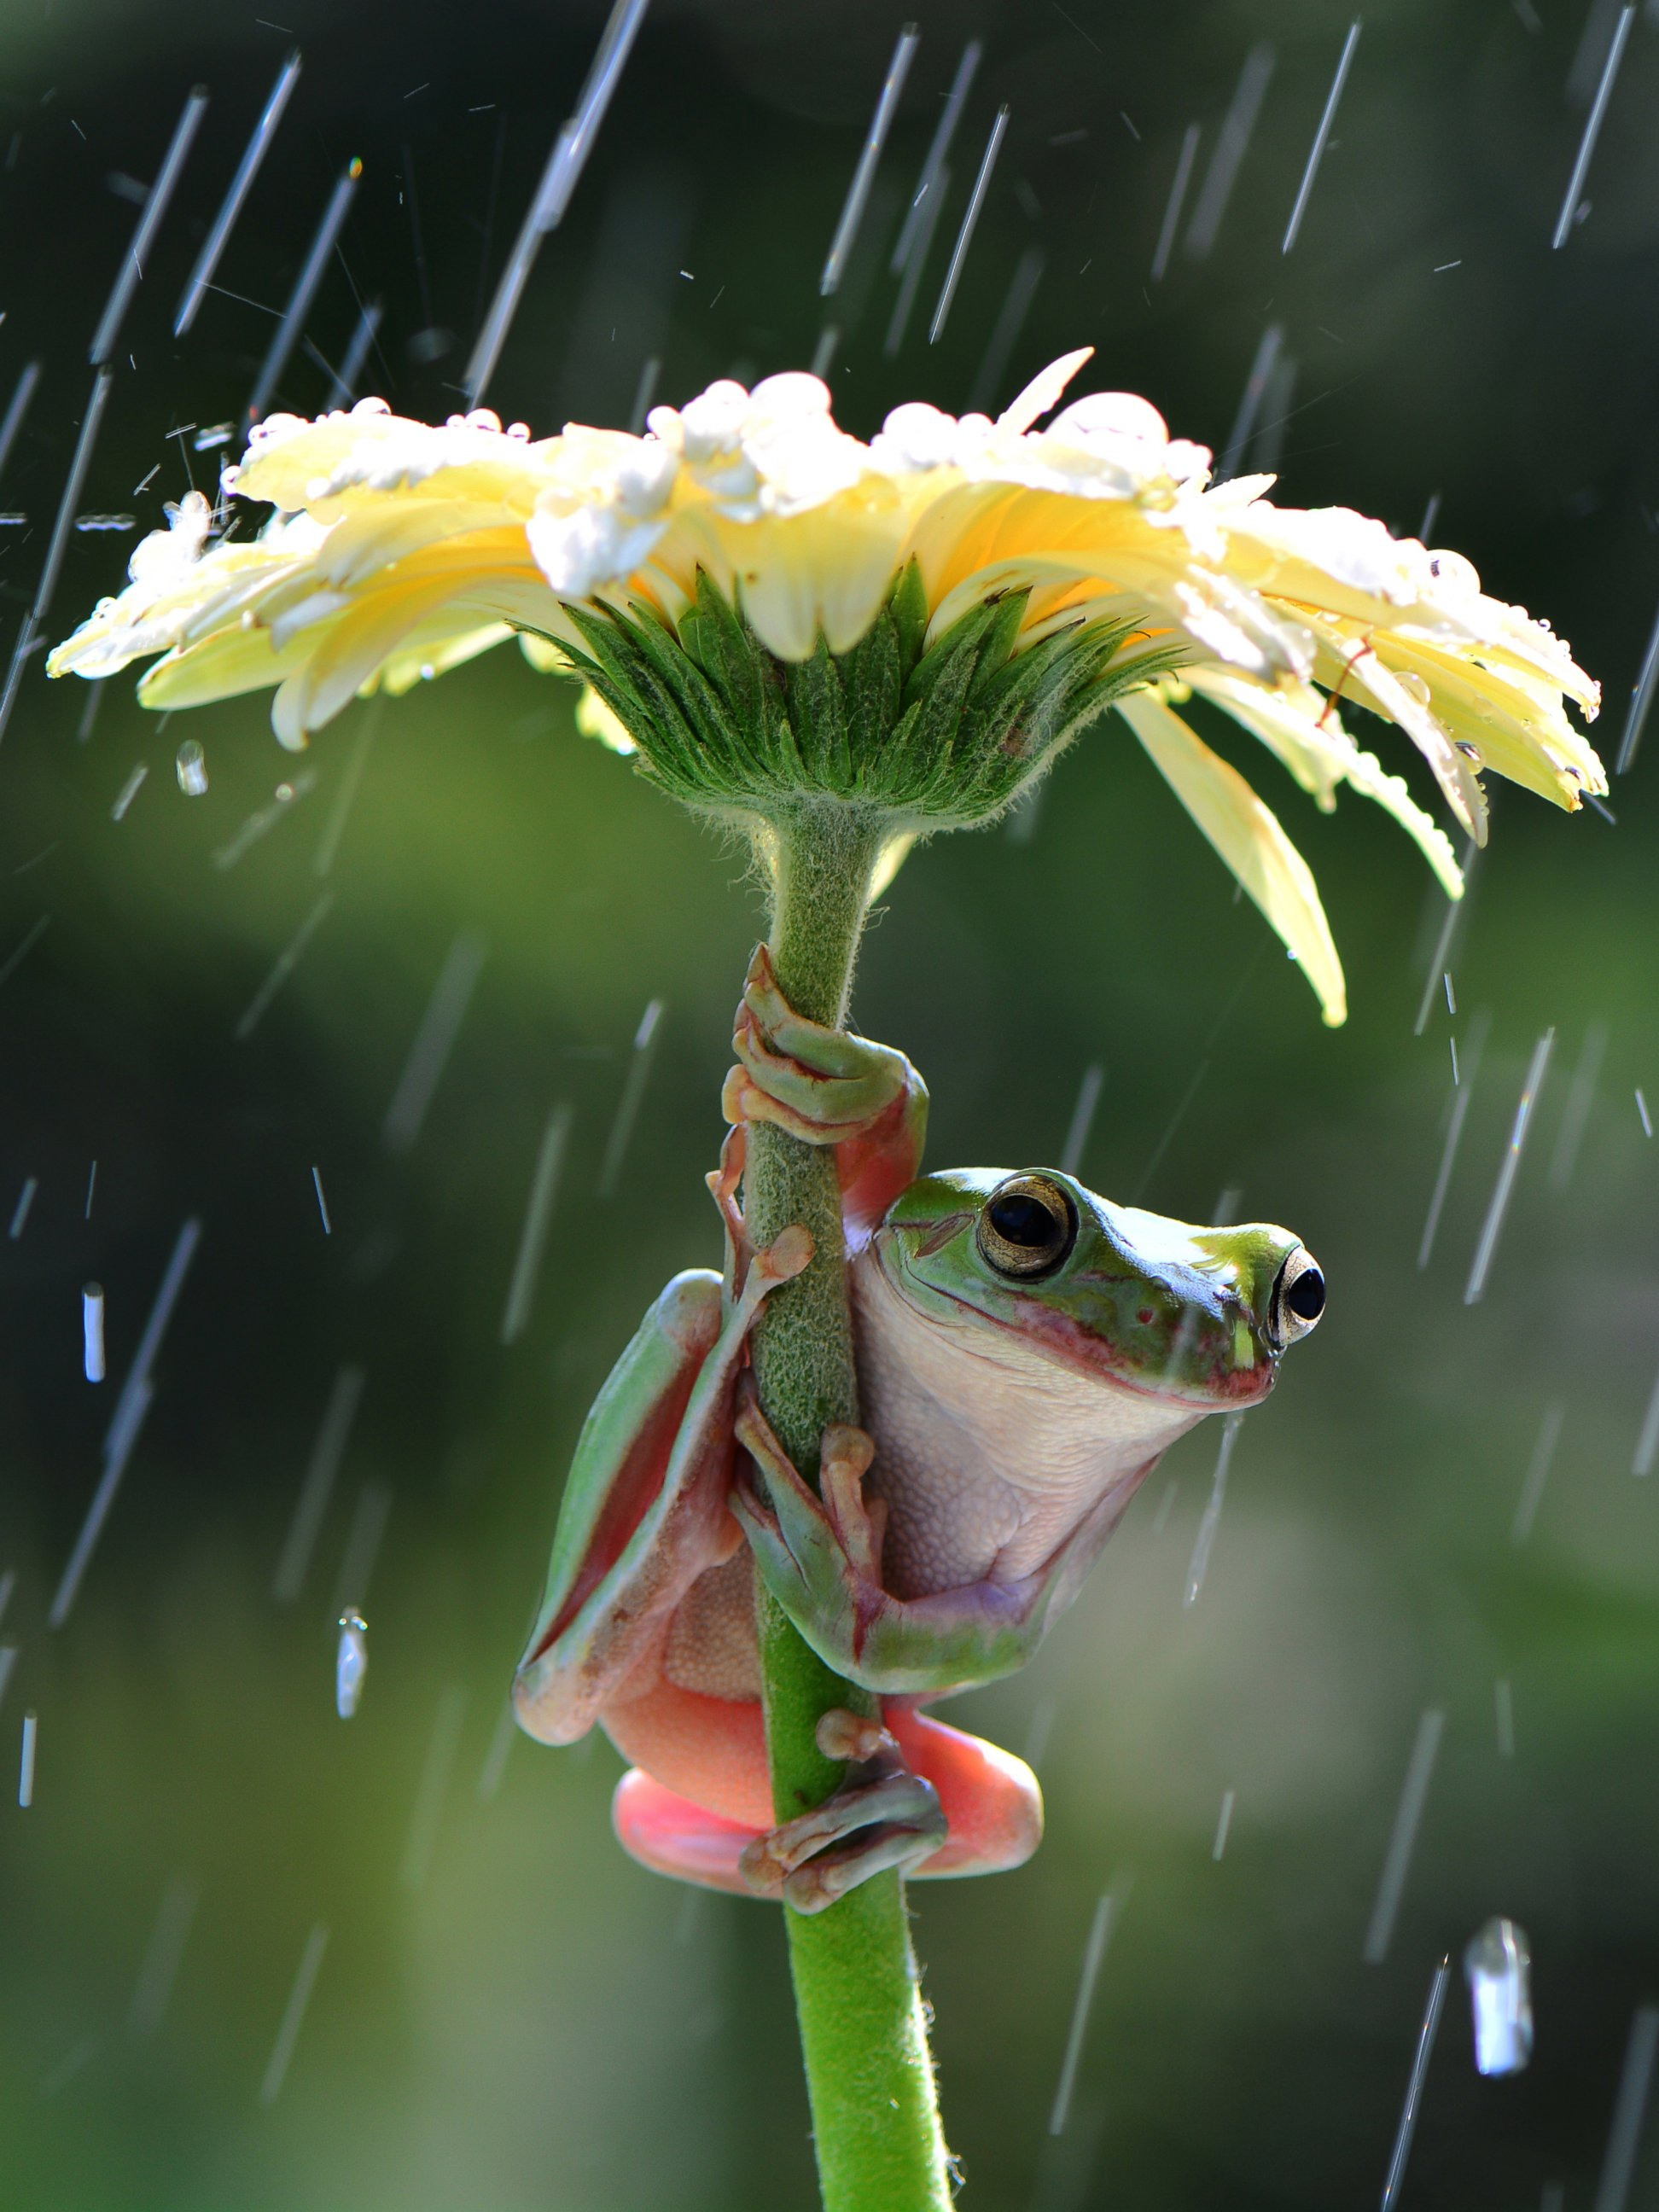 See How A Frog Stays Dry in Rain